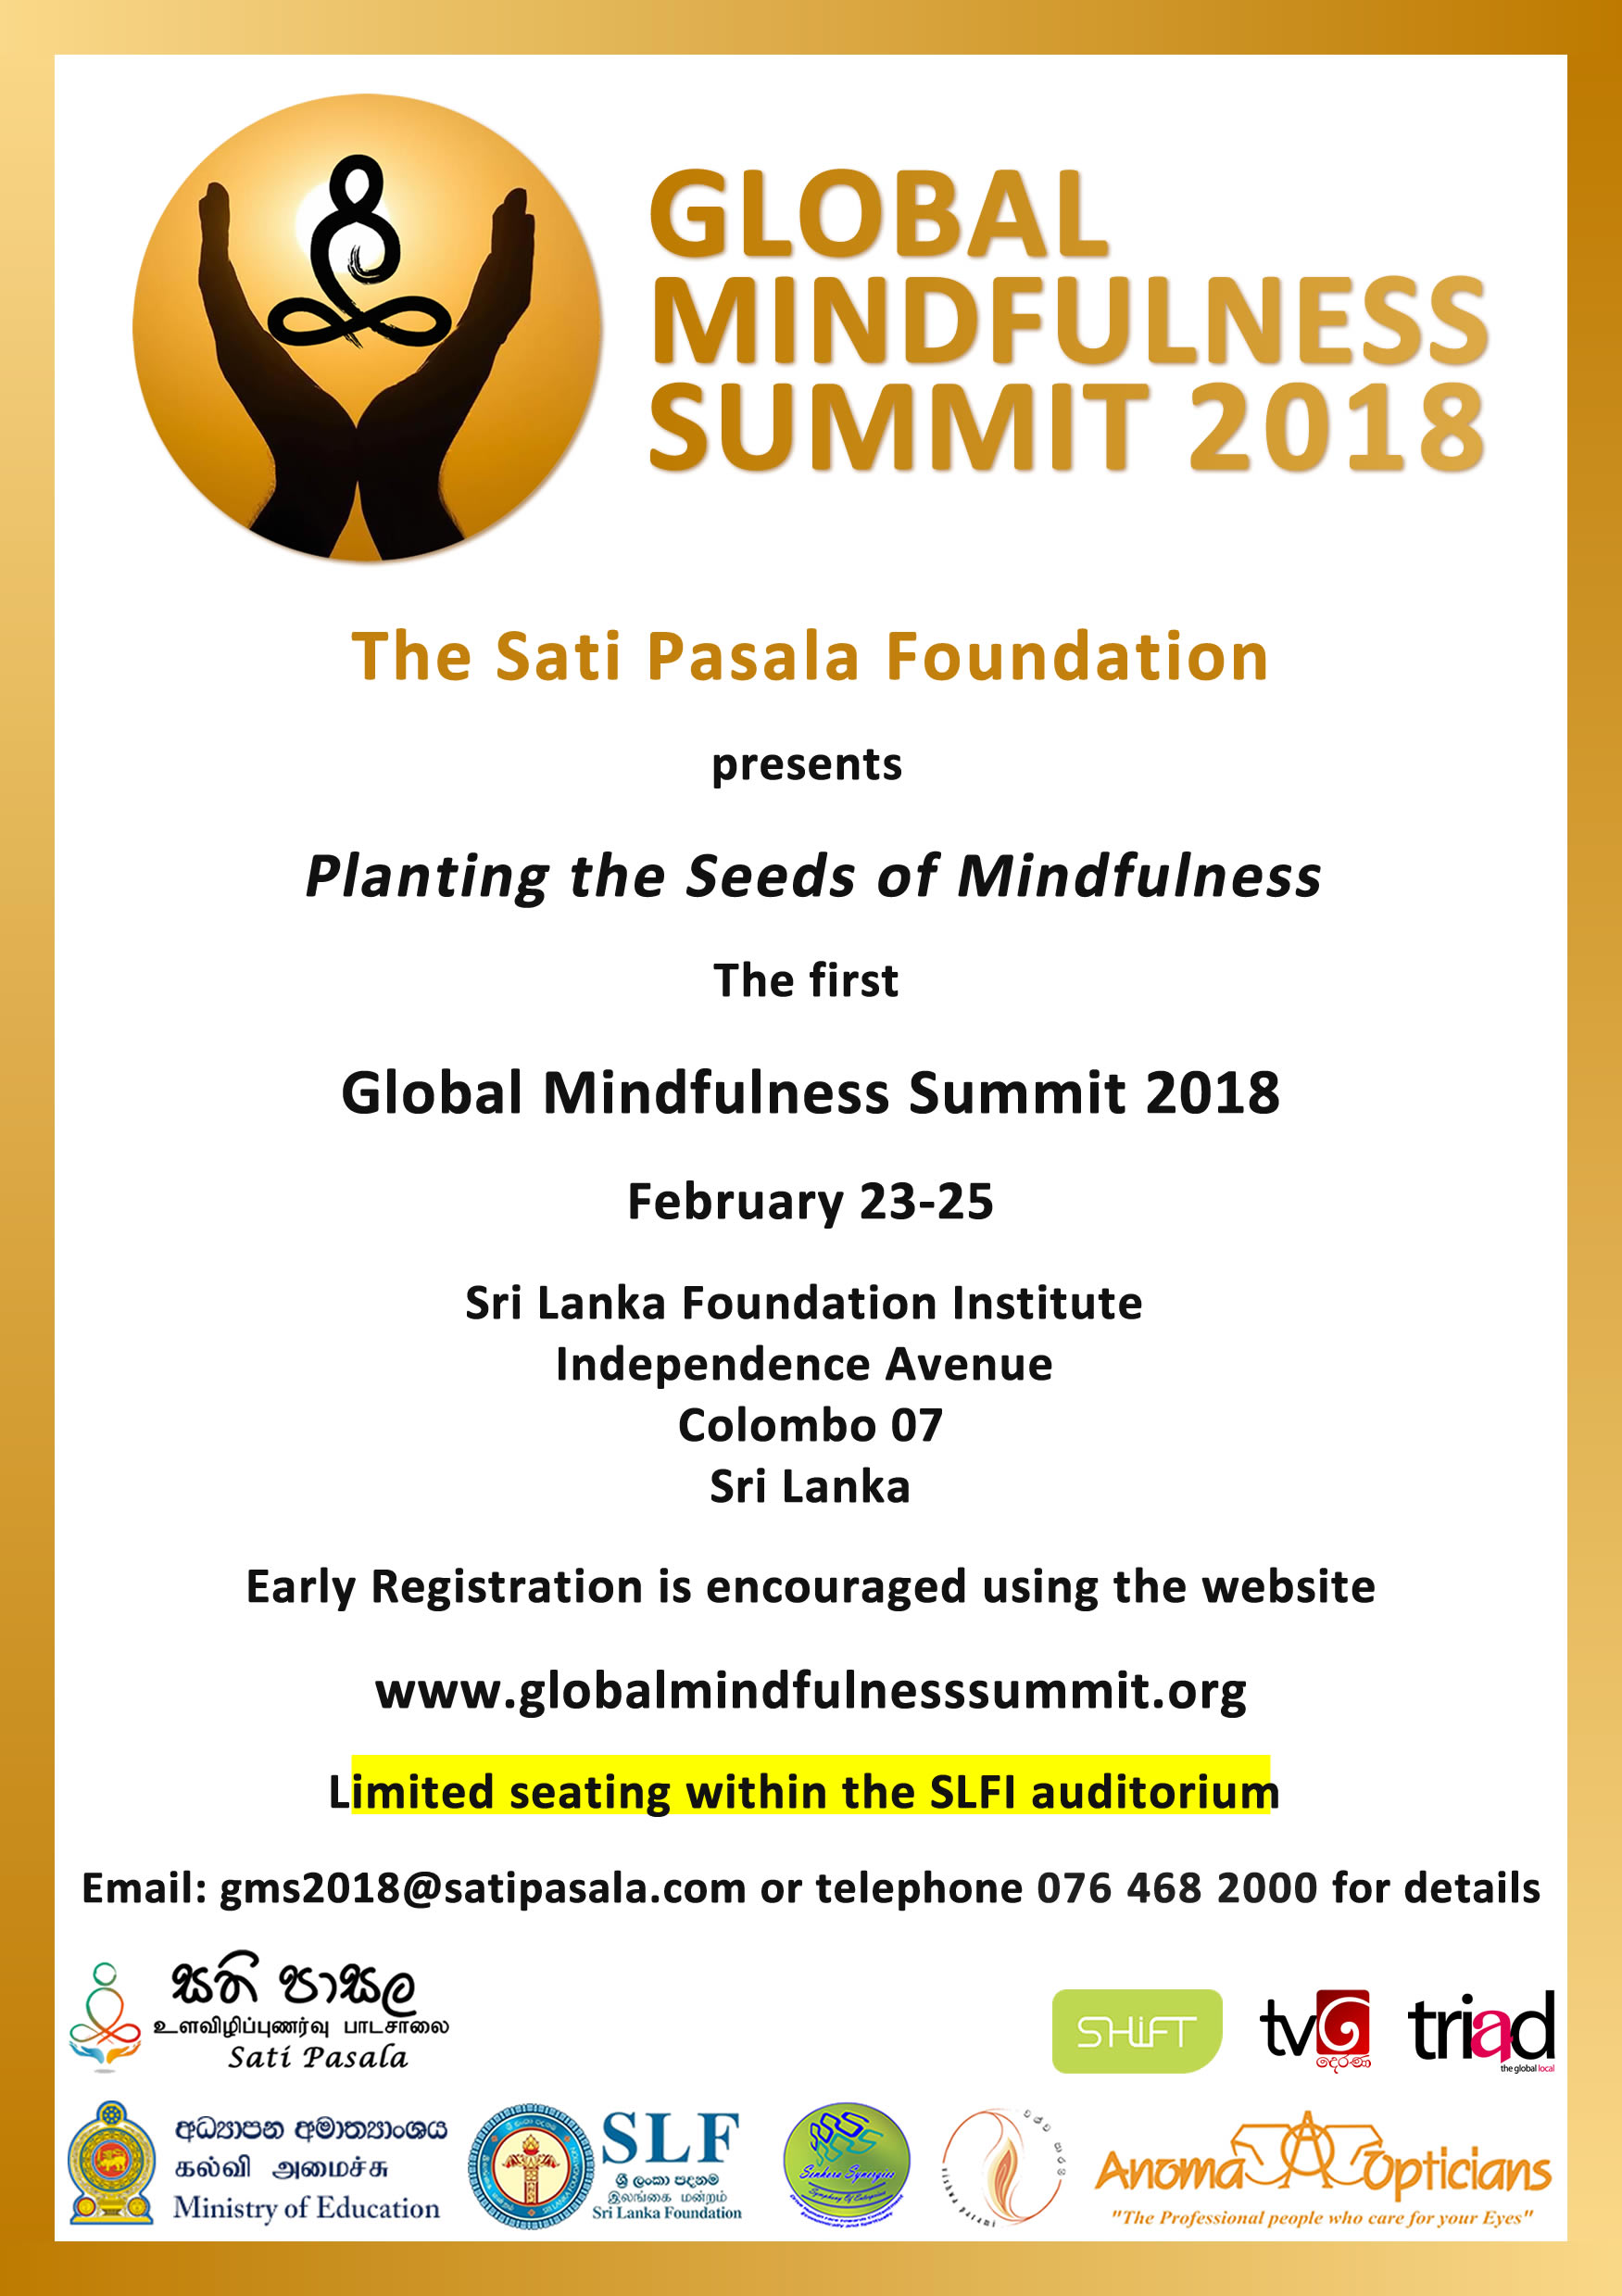 The Global Mindfulness Summit